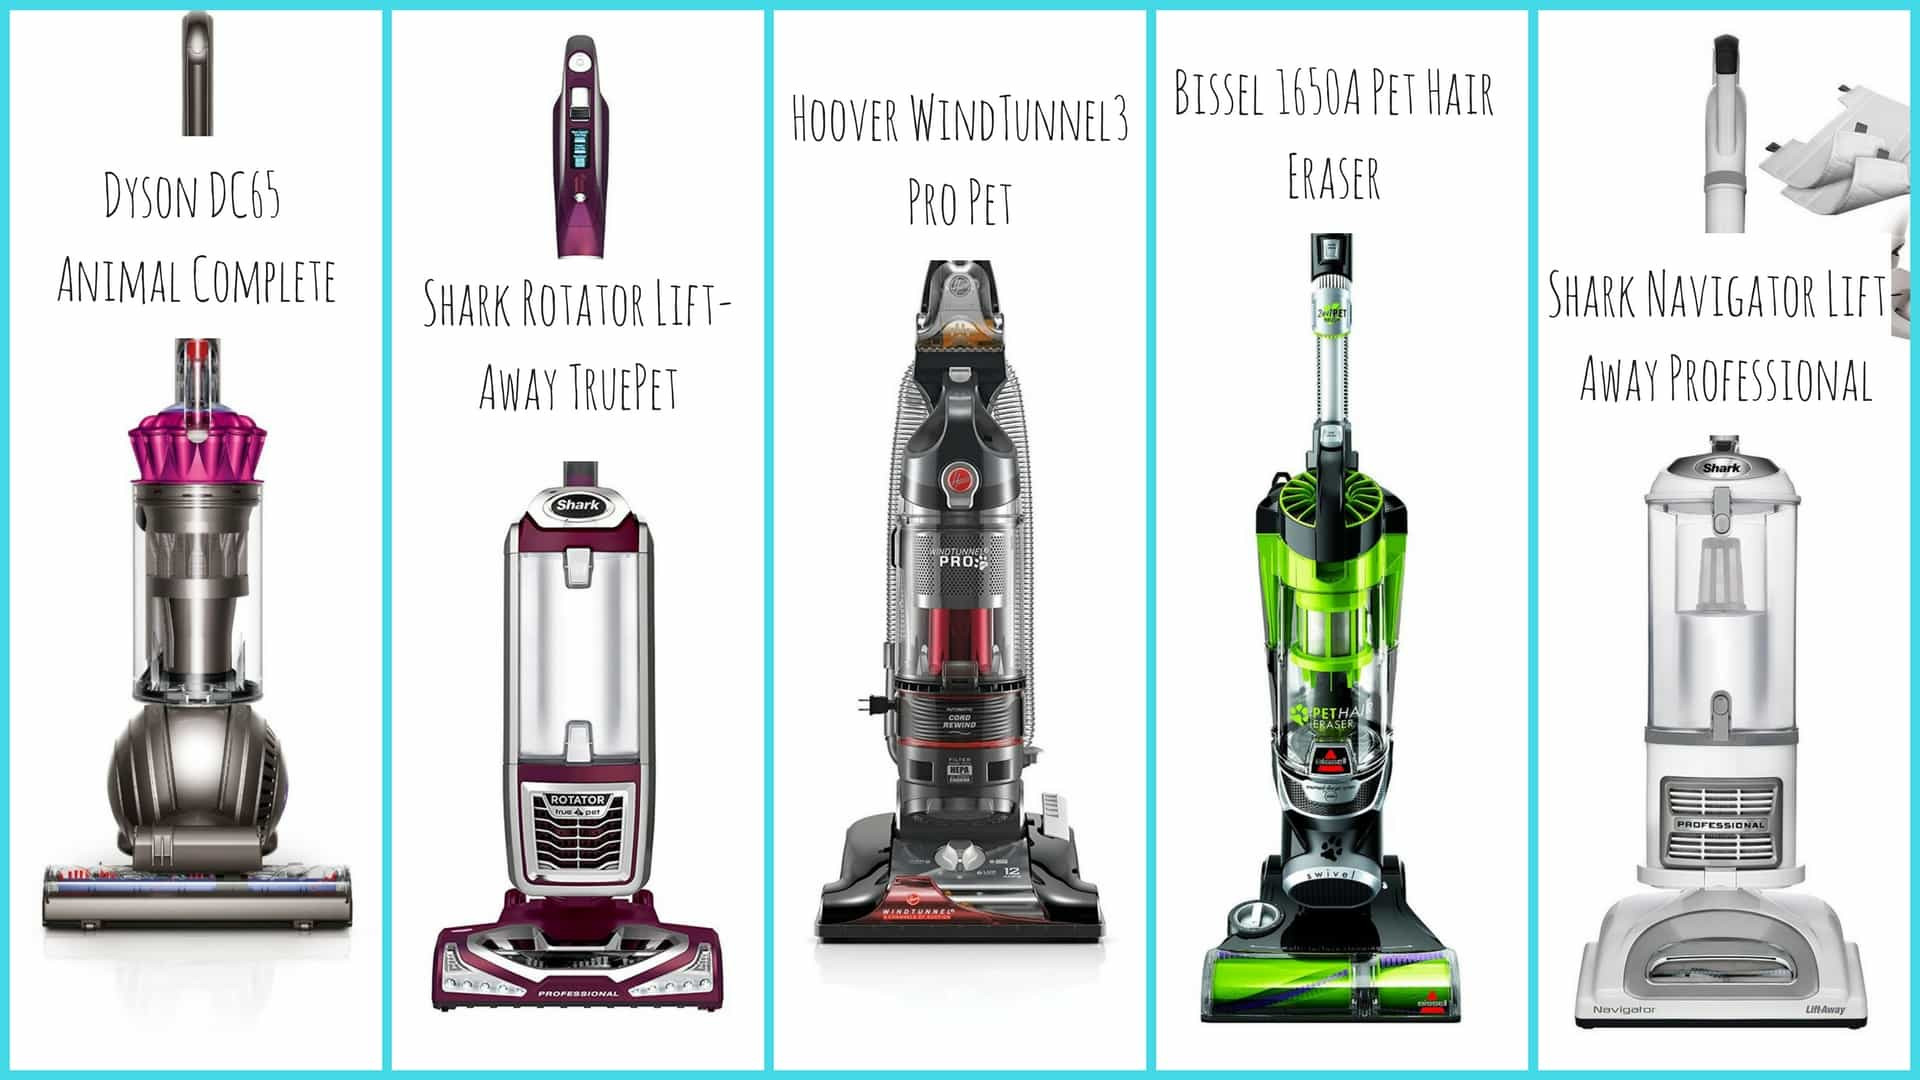 Best Vacuum for Pet Hair and Hardwood Floors Of Stupendous Vinegar Ways to Remove Pet Hair Wikihow together with with Regard to Indoor Dog A Complete Guide Mini Husky Lovers with Pet Hair Vacuum Vacuums In Best Vacuum